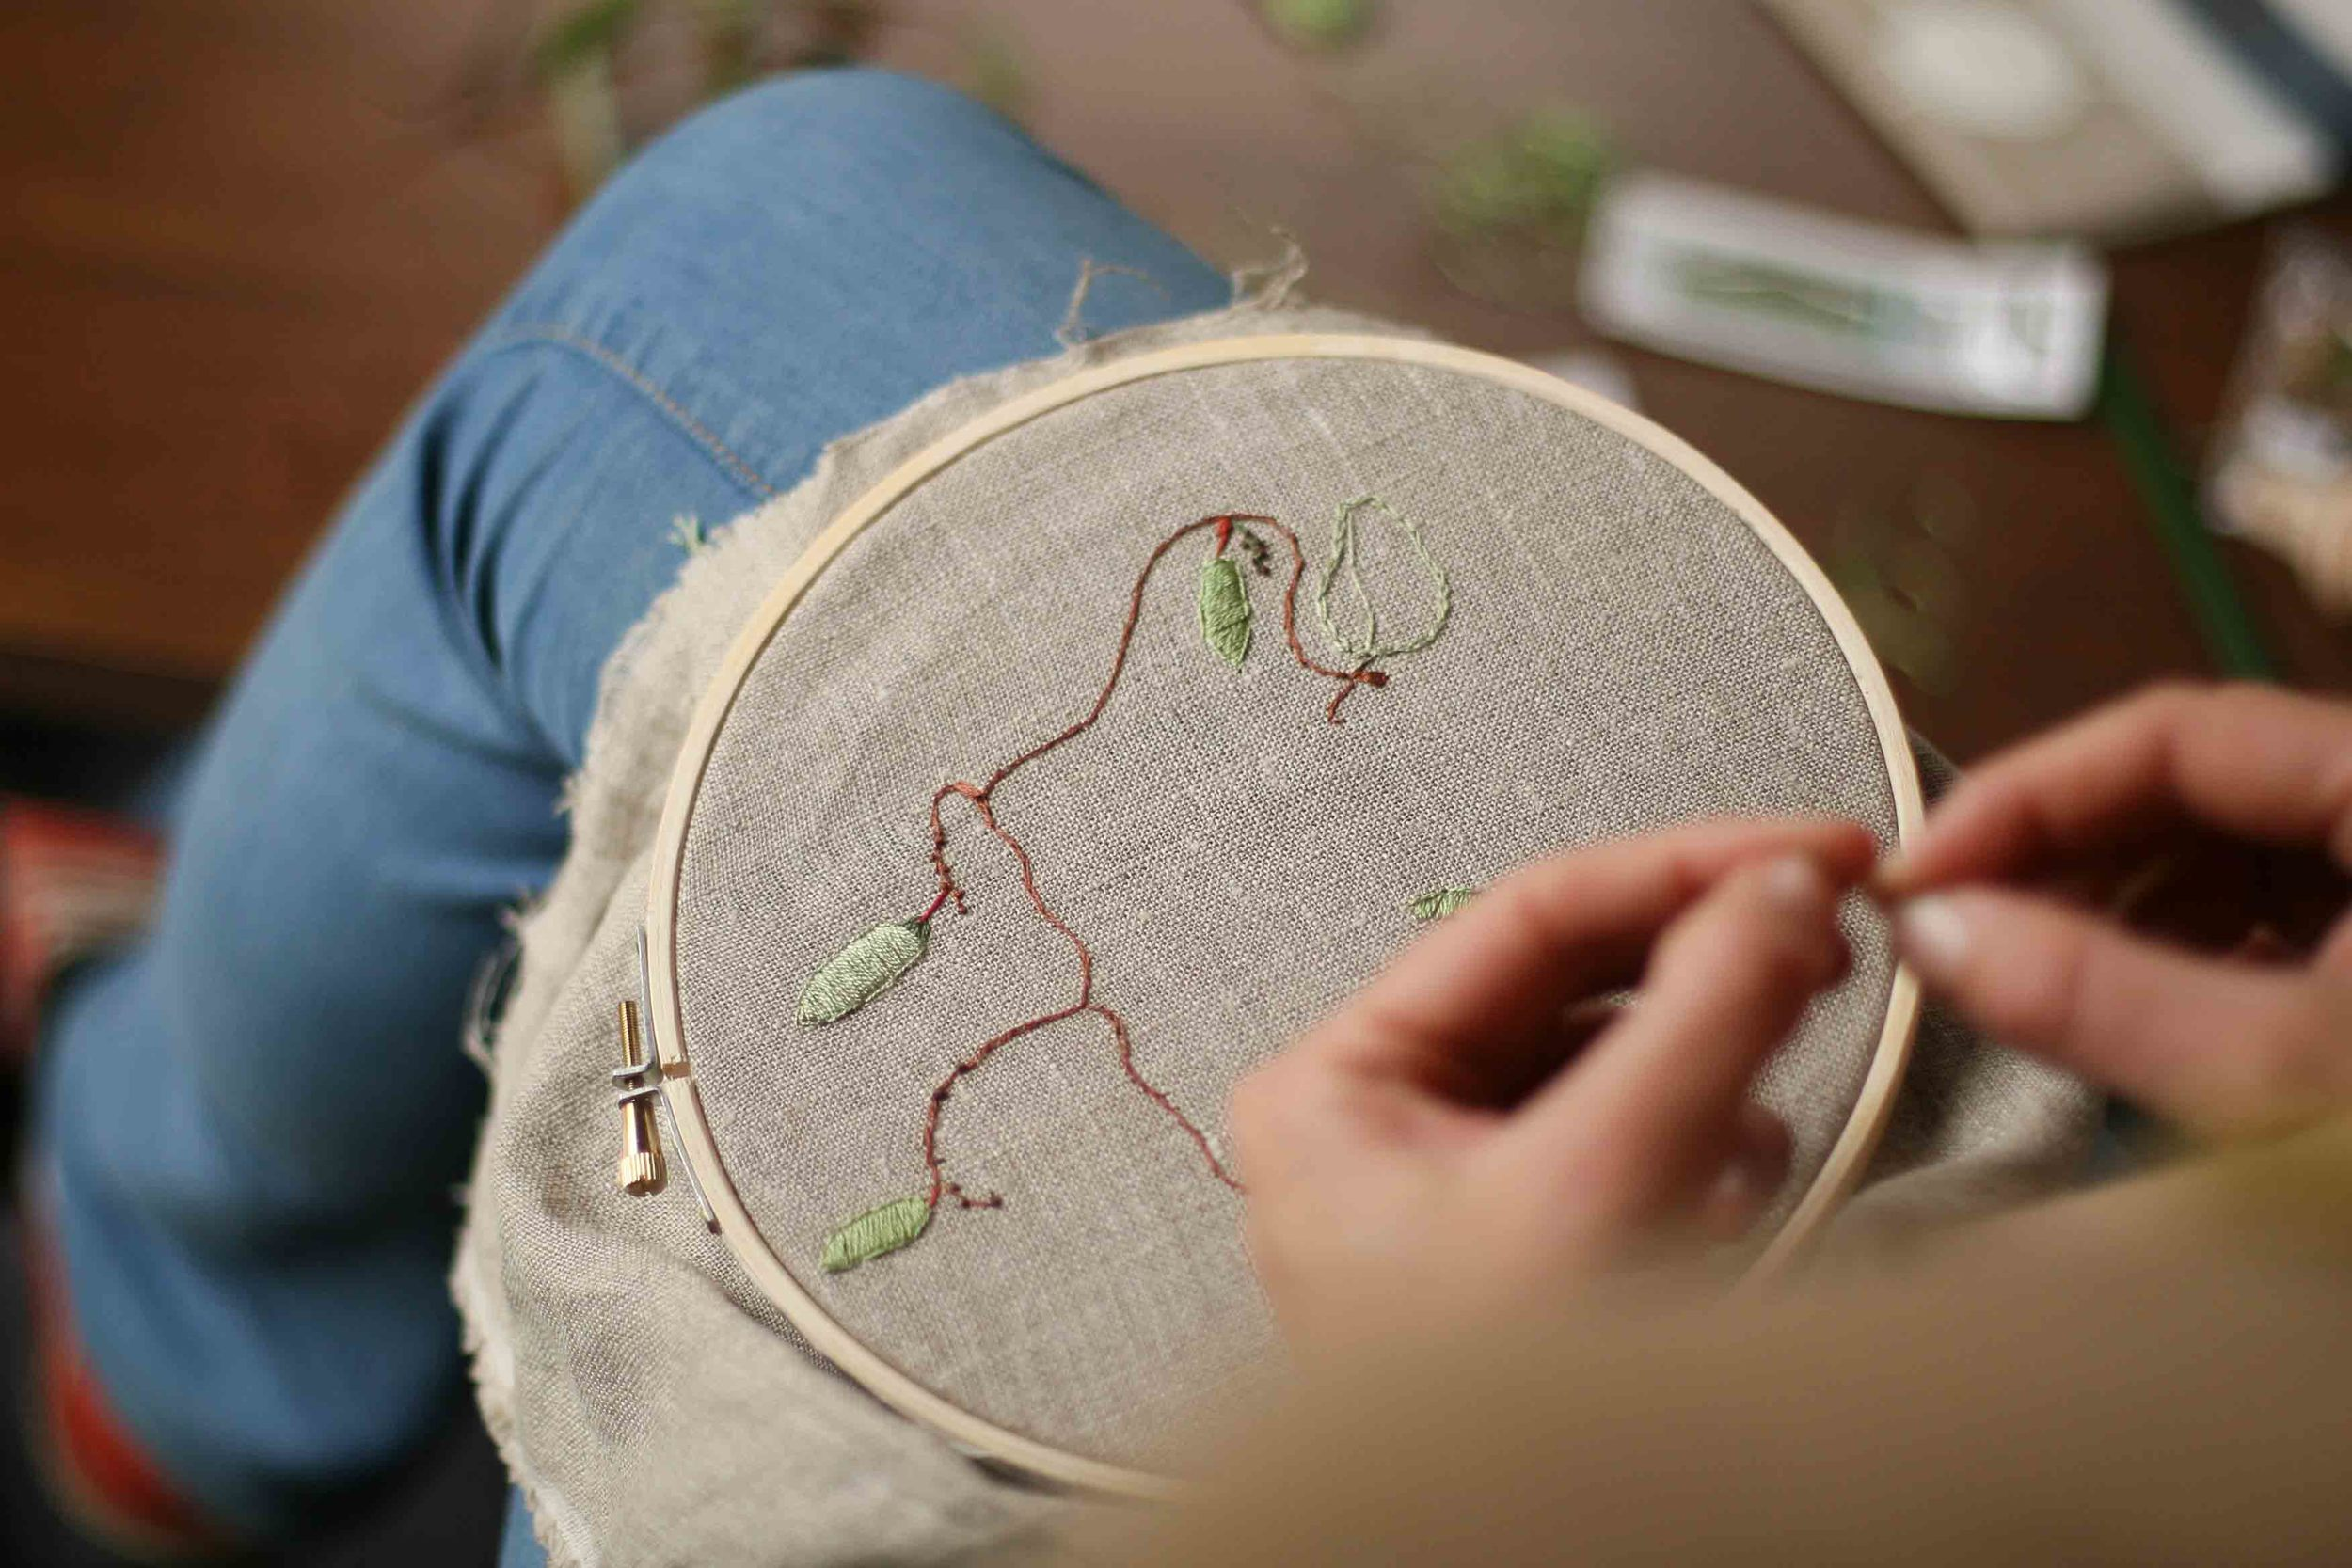 Embroidery from the Natural World taught by Melissa Wastney.